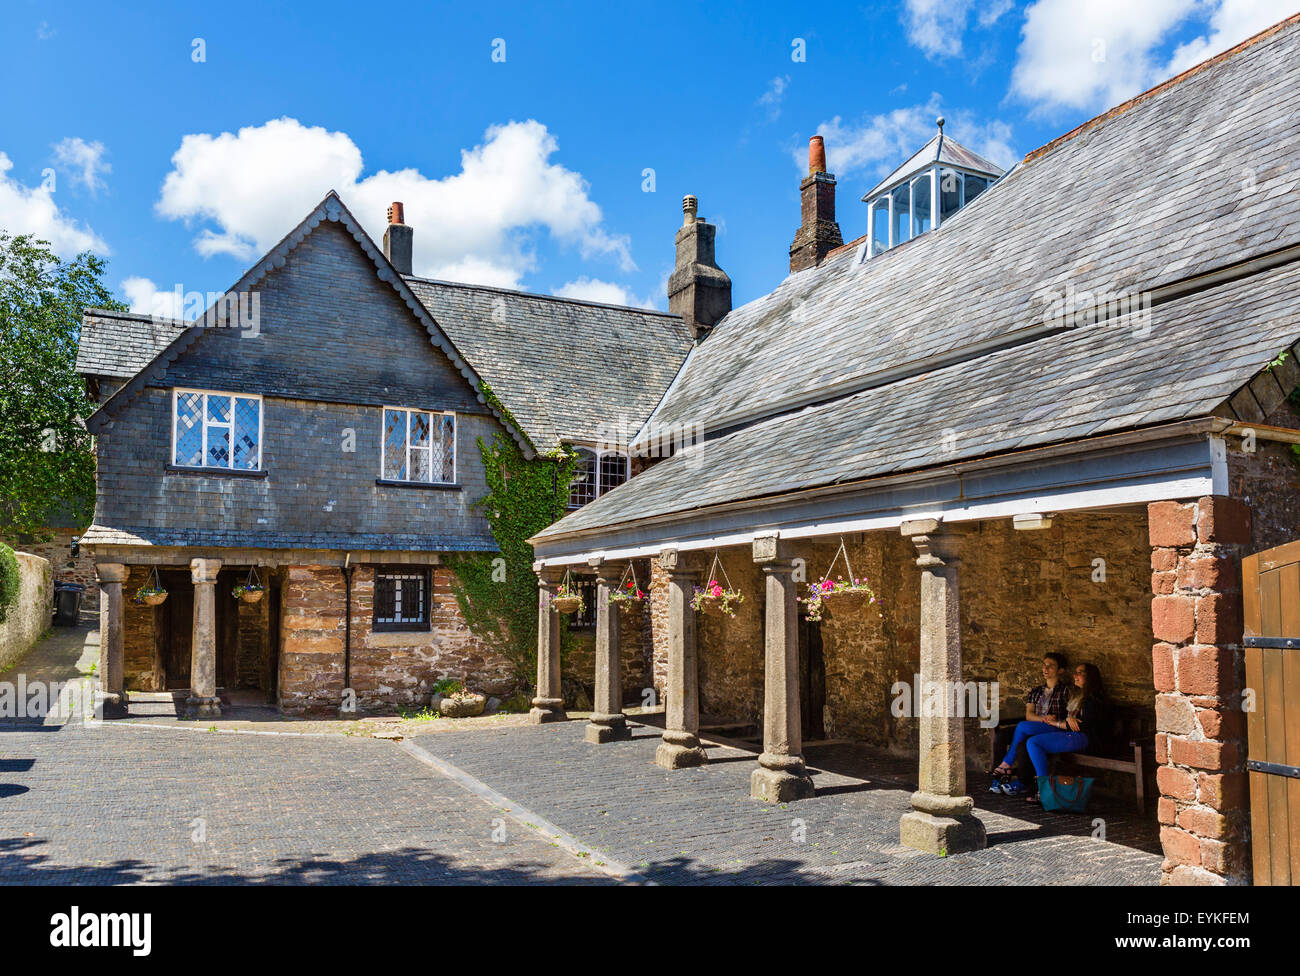 The historic 16thC Tudor Guildhall in Totnes, associated with Oliver Cromwell and the Civil War, Devon, England, - Stock Image